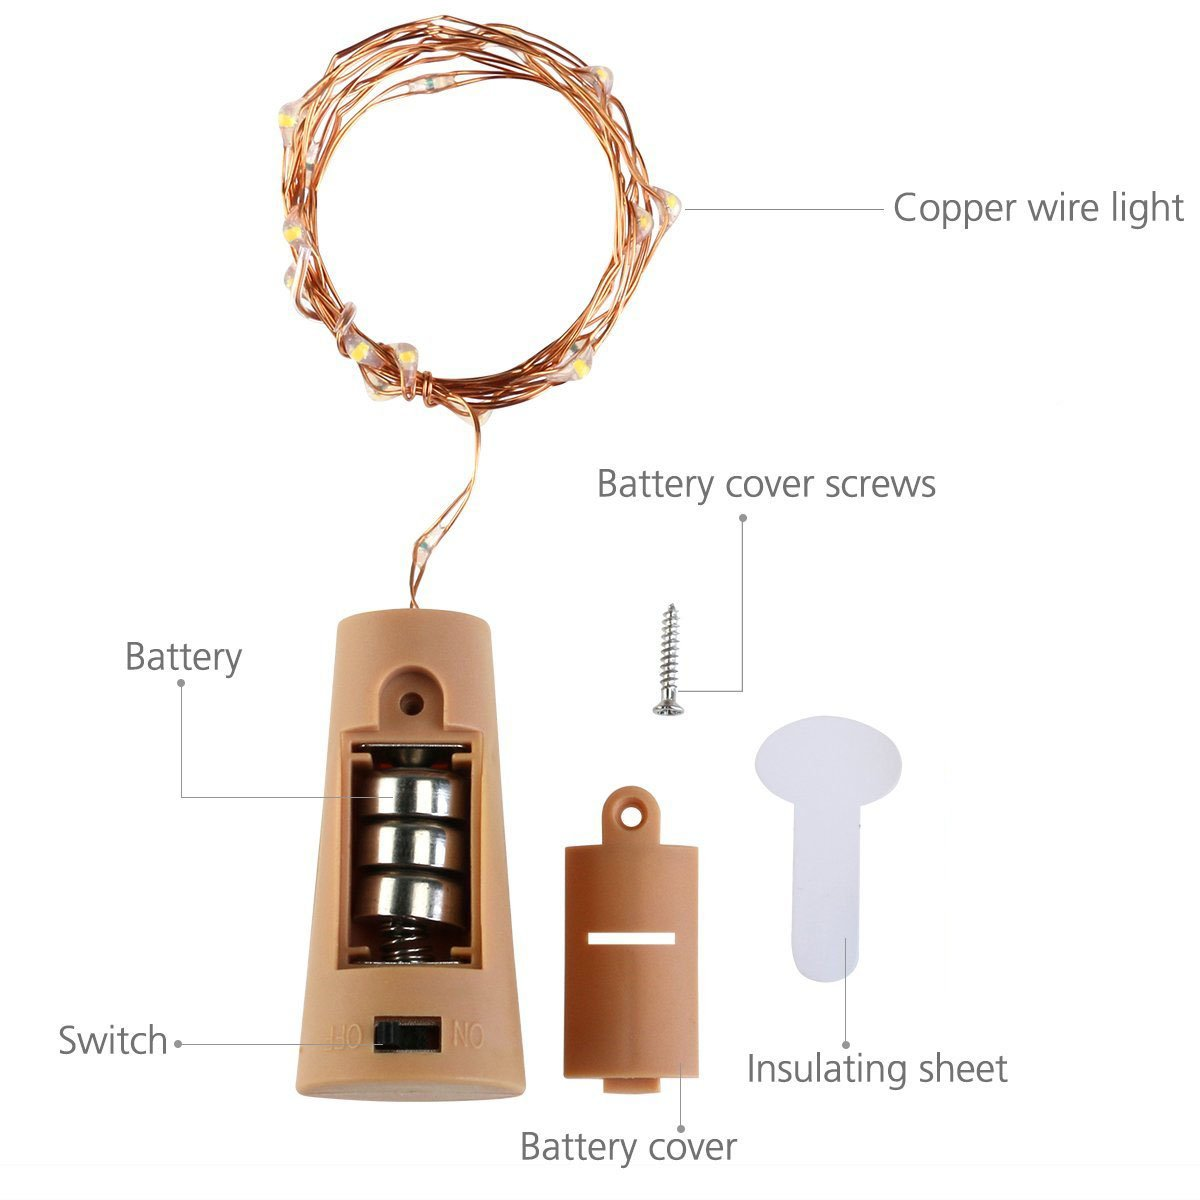 LoveNite Wine Bottle Lights with Cork, Warm White 10 Pack Battery Operated LED Cork Shape Silver Copper Wire Colorful Fairy Mini String Lights for DIY, Party, Decor, Christmas, Halloween,Wedding by LoveNite (Image #3)